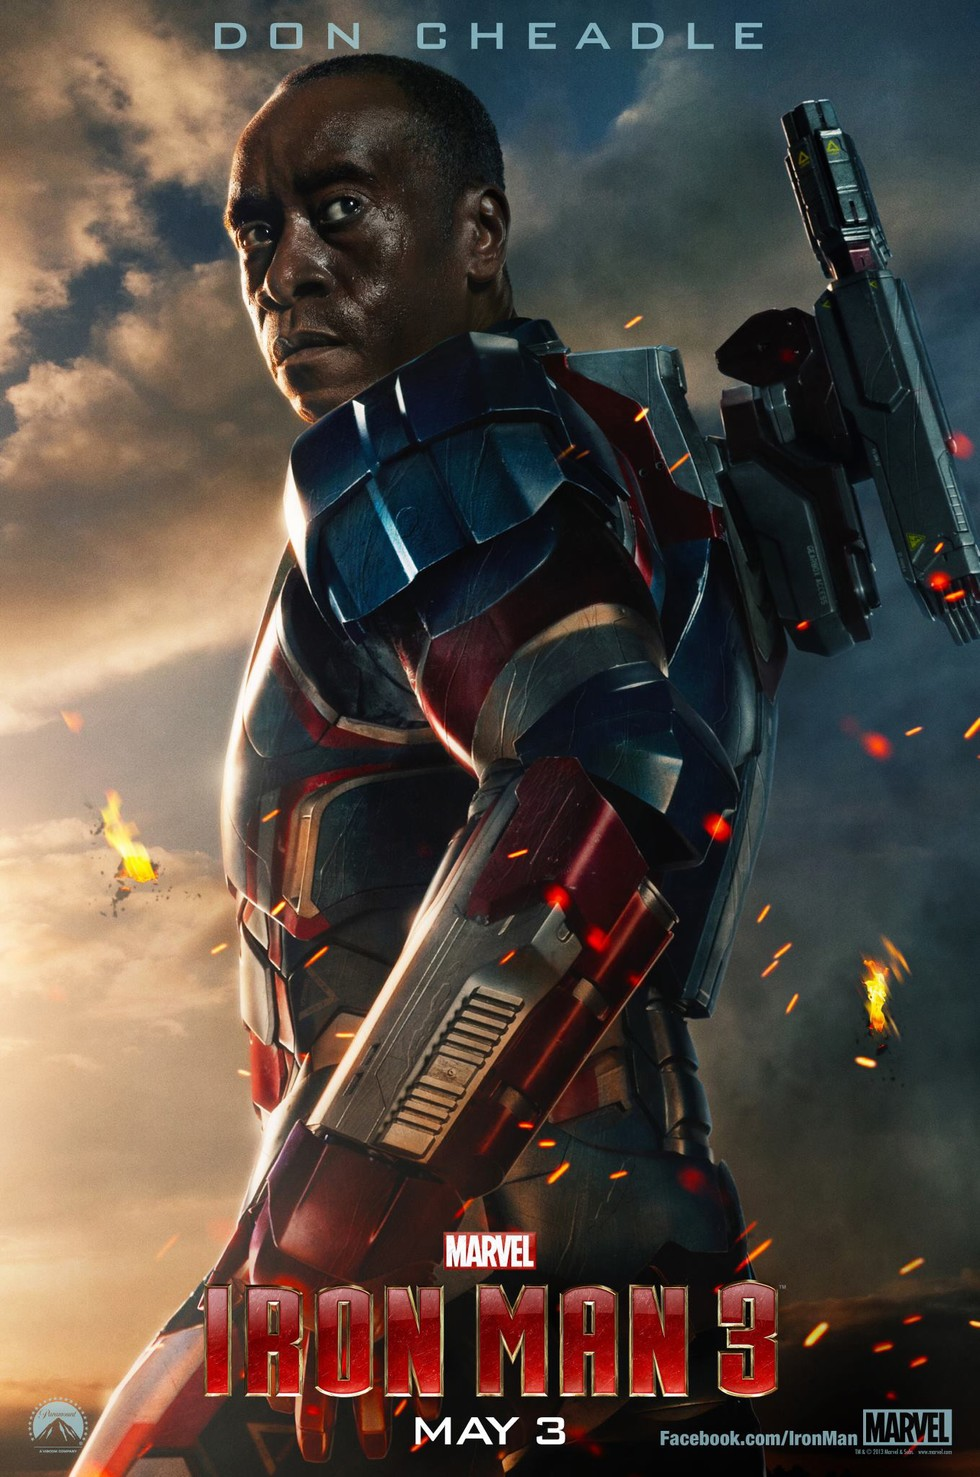 Iron Man 3 - Movie Poster #3 (Large)